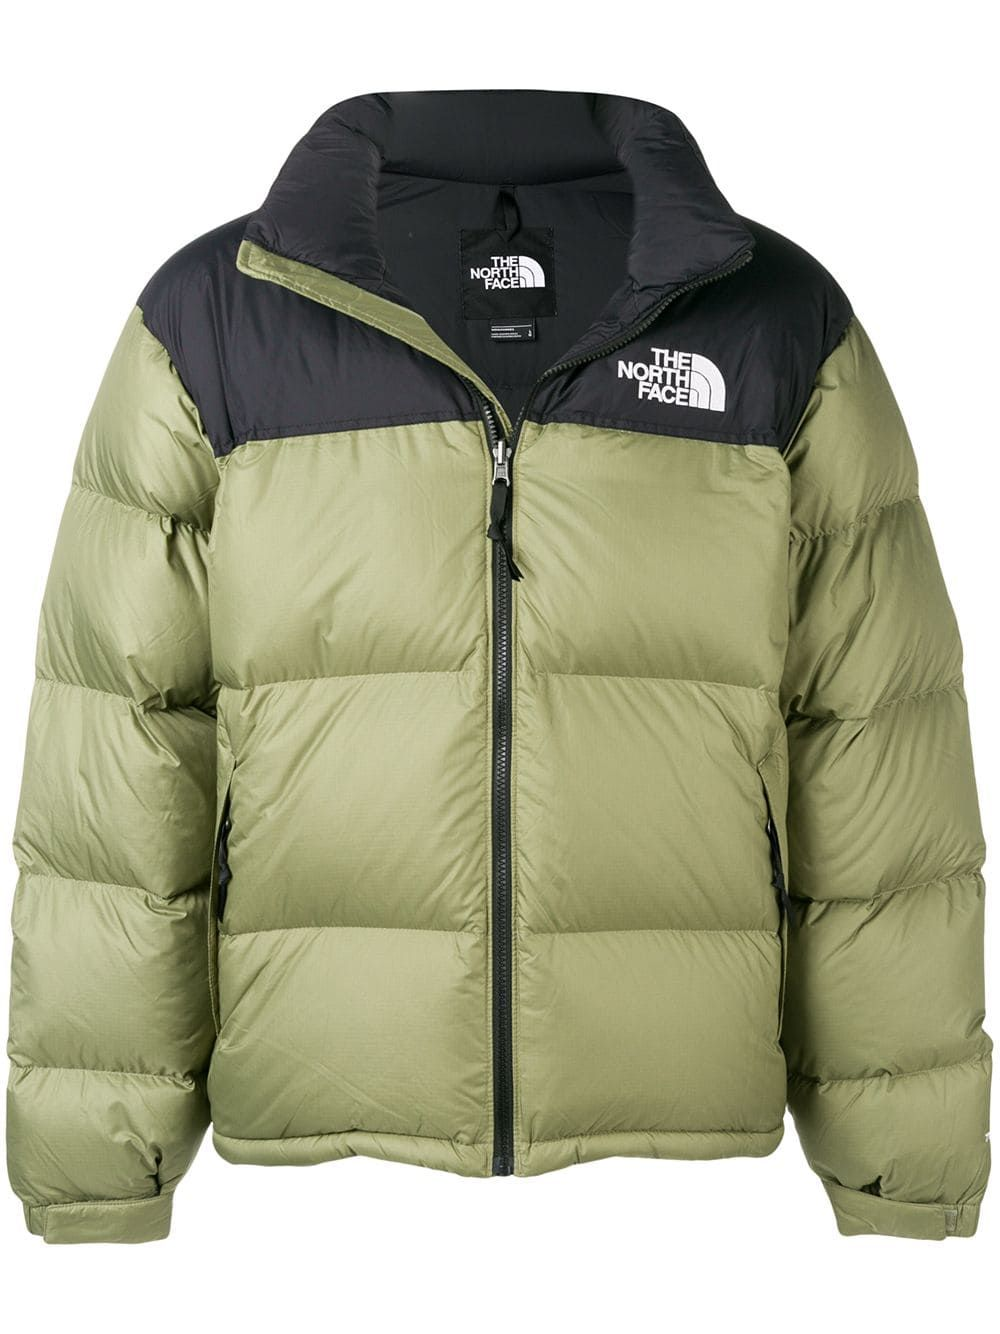 The North Face Feather Down Jacket In Green Modesens